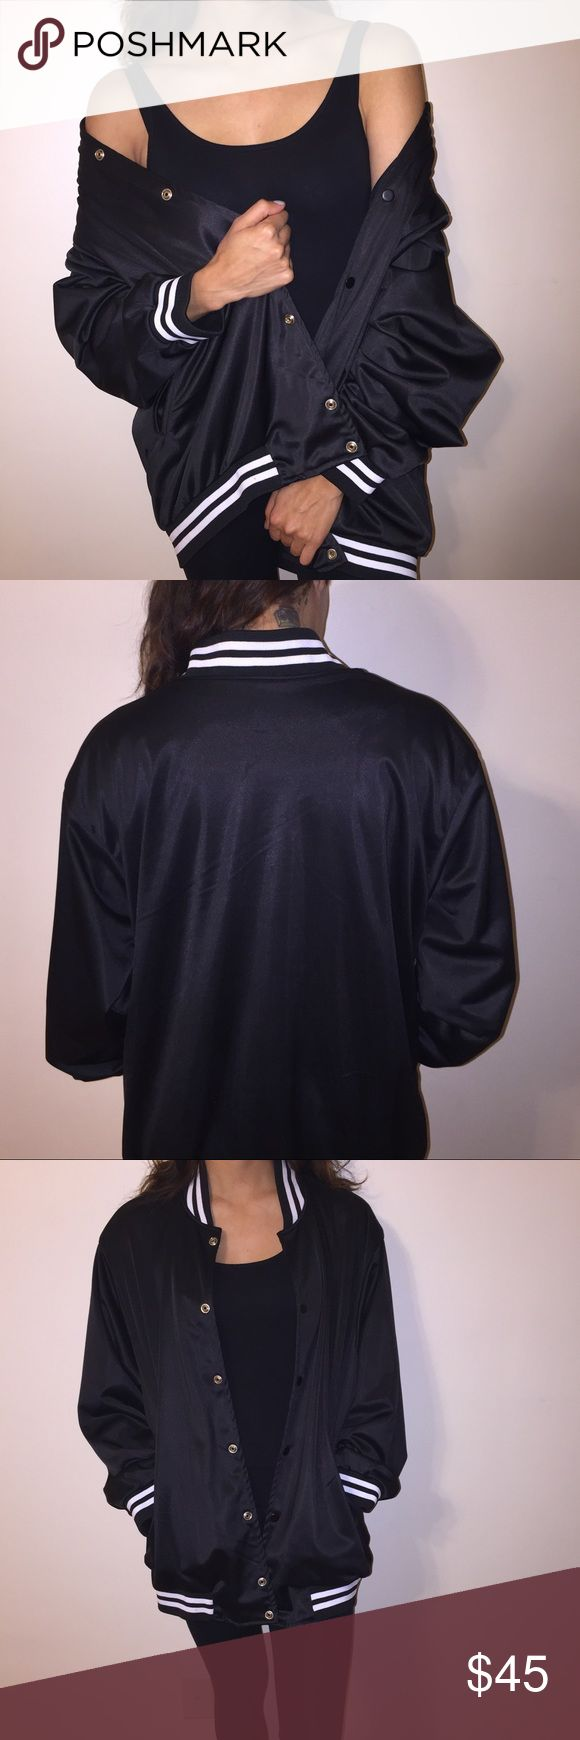 Black Satin (looking) Jacket 🎱 This dope sweater is the perfect piece to add to your wardrobe! Wear it off the shoulder with a dress, or as seen on pic! | No size tags, but fits like a men's XL -- Impeccable condition! 🍾 Jackets & Coats Bomber & Varsity